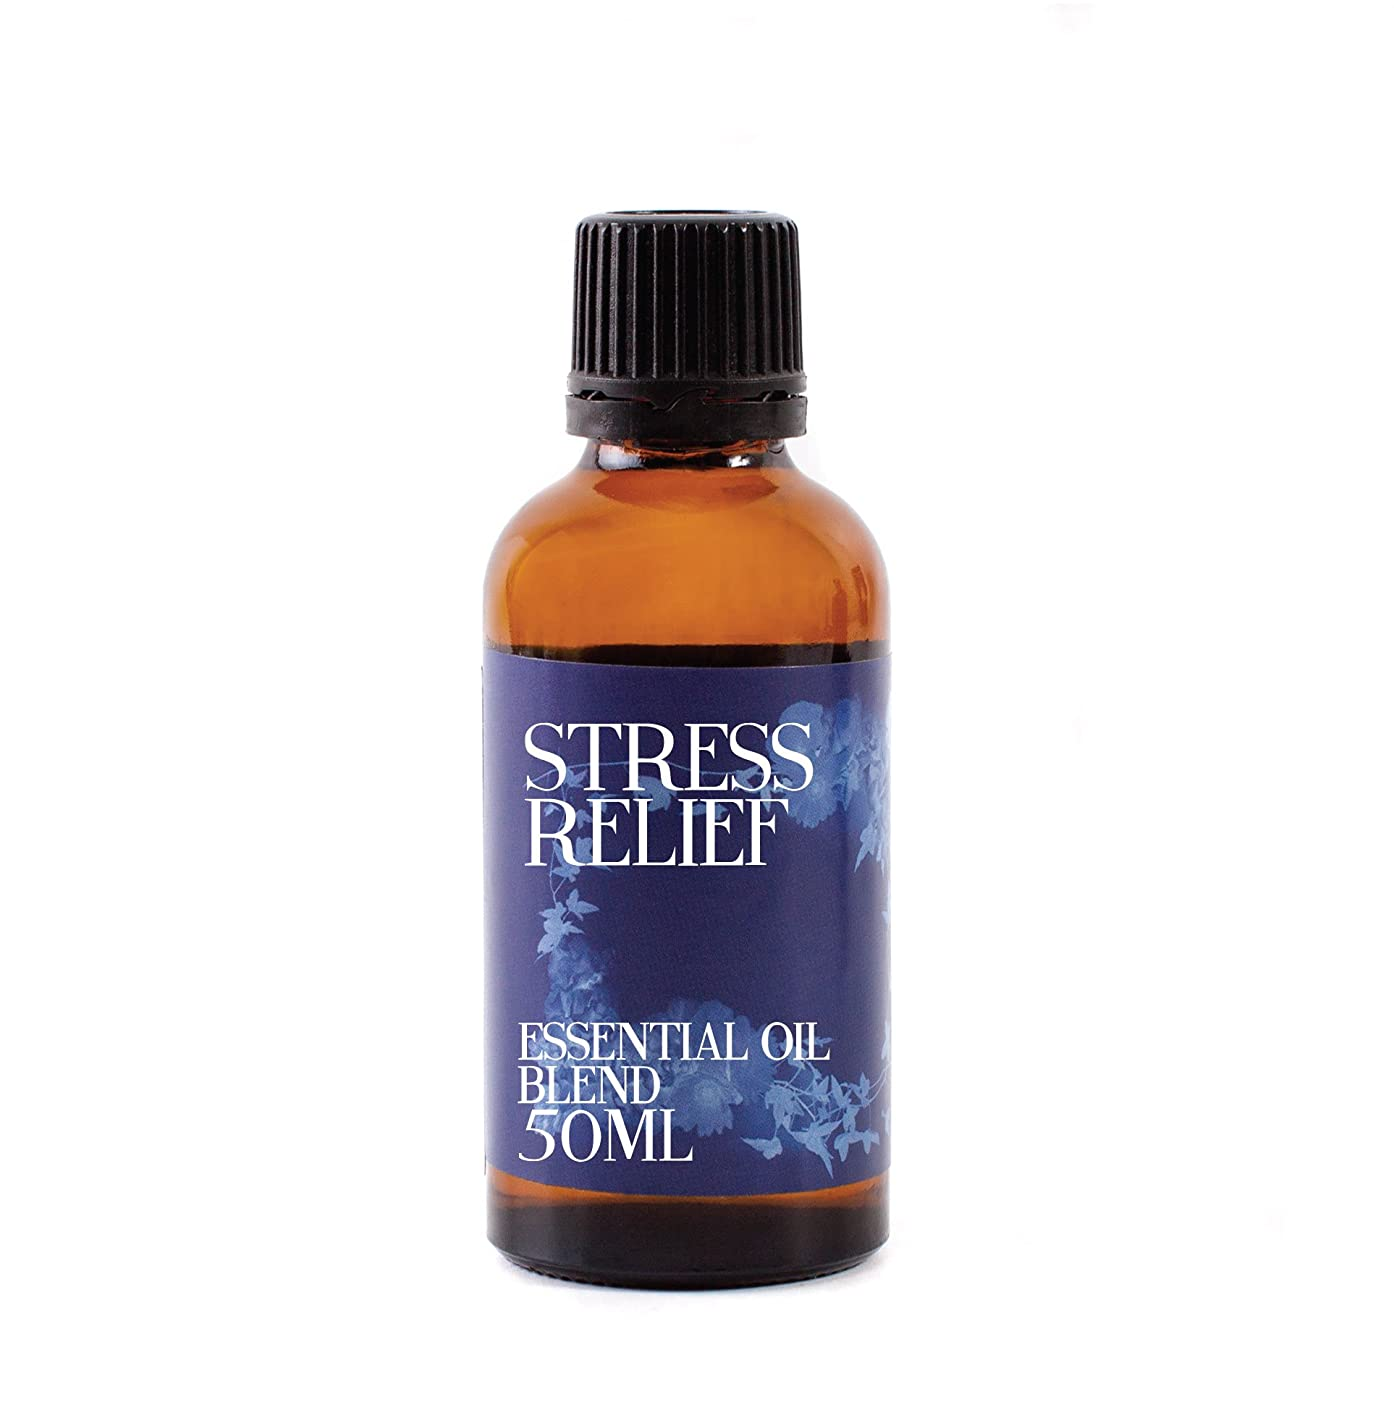 思慮深いハブブ勇敢なMystix London | Stress Relief Essential Oil Blend - 50ml - 100% Pure